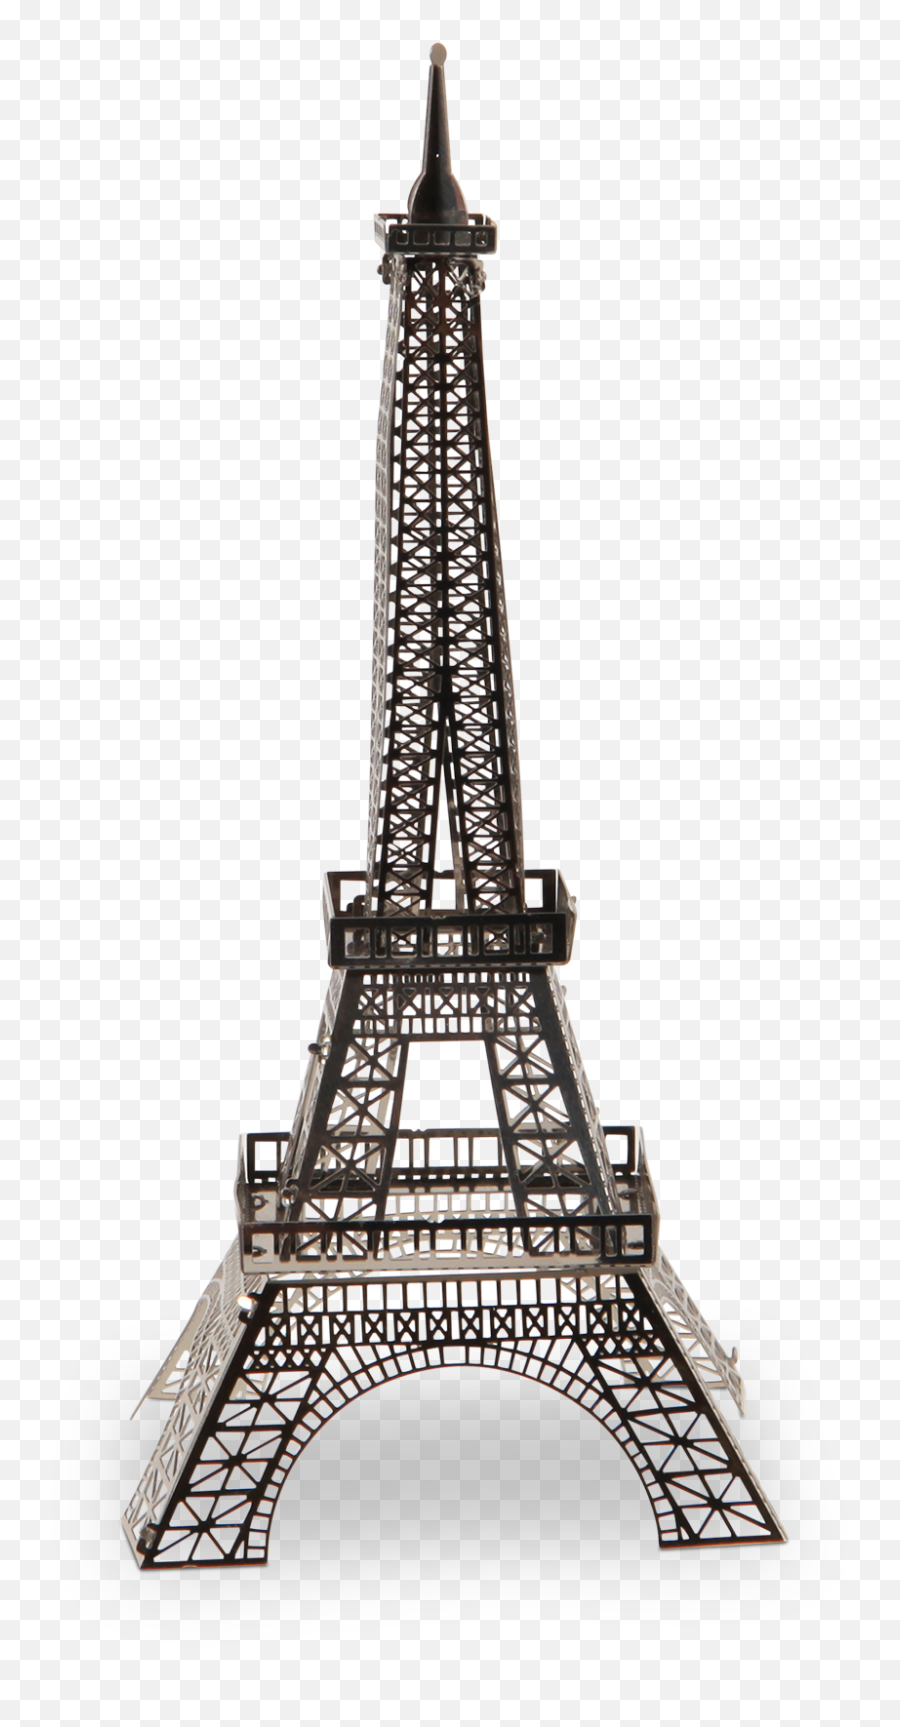 Eiffel Tower Png Free Eiffel Tower - 3d Sketches Of Eiffel Towers Emoji,Eiffel Tower Emoji